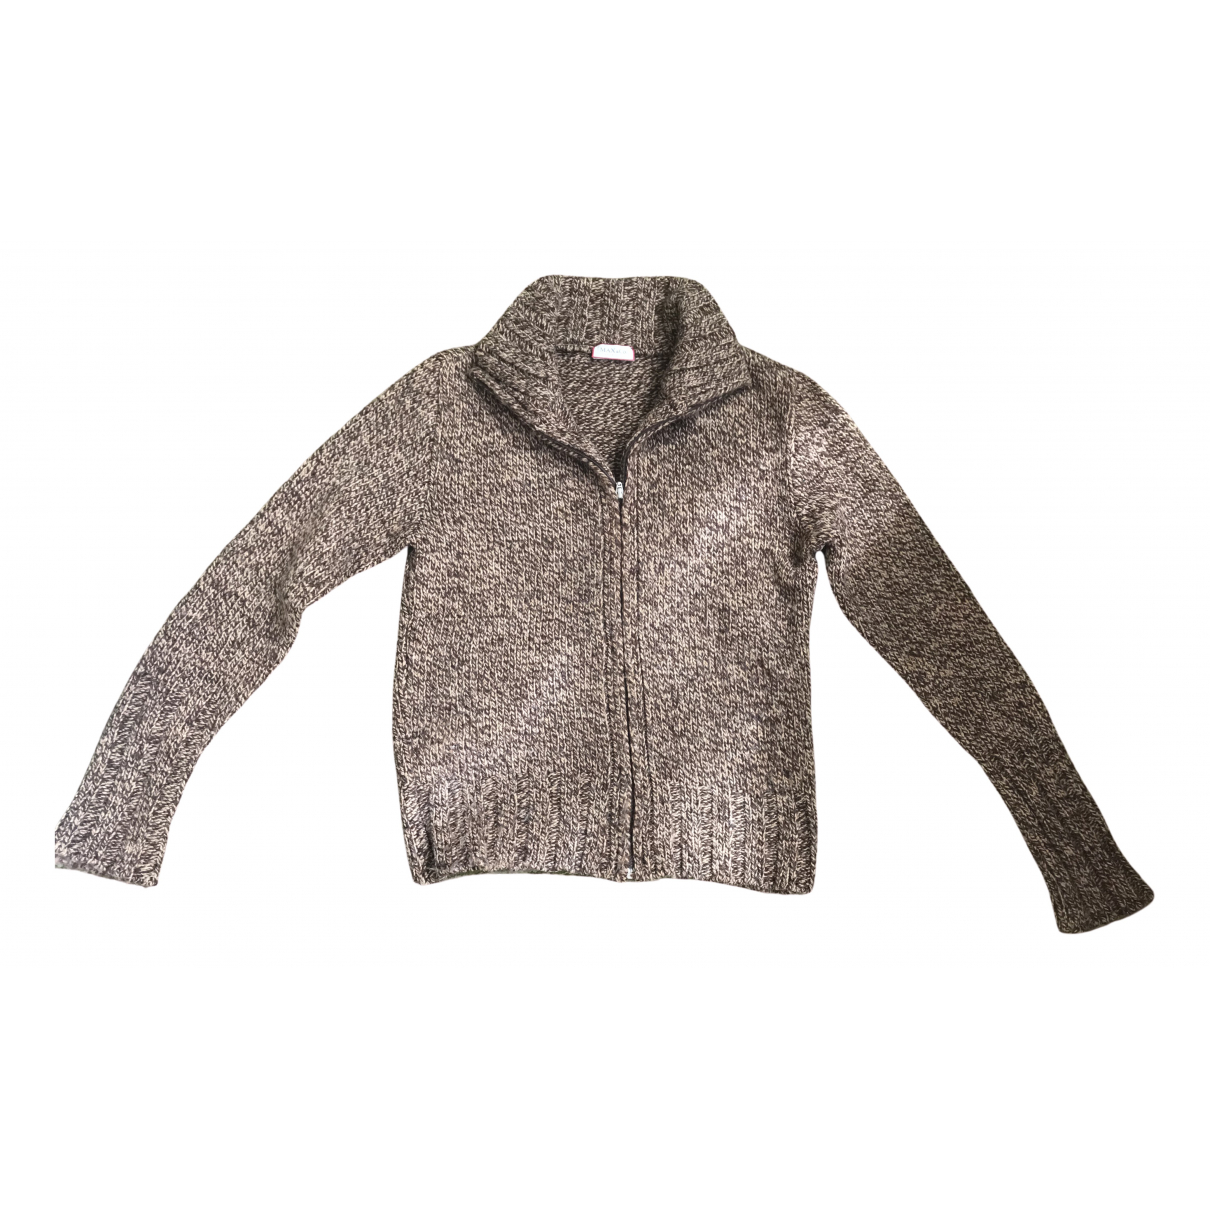 Max & Co \N Brown Wool Knitwear for Women S International